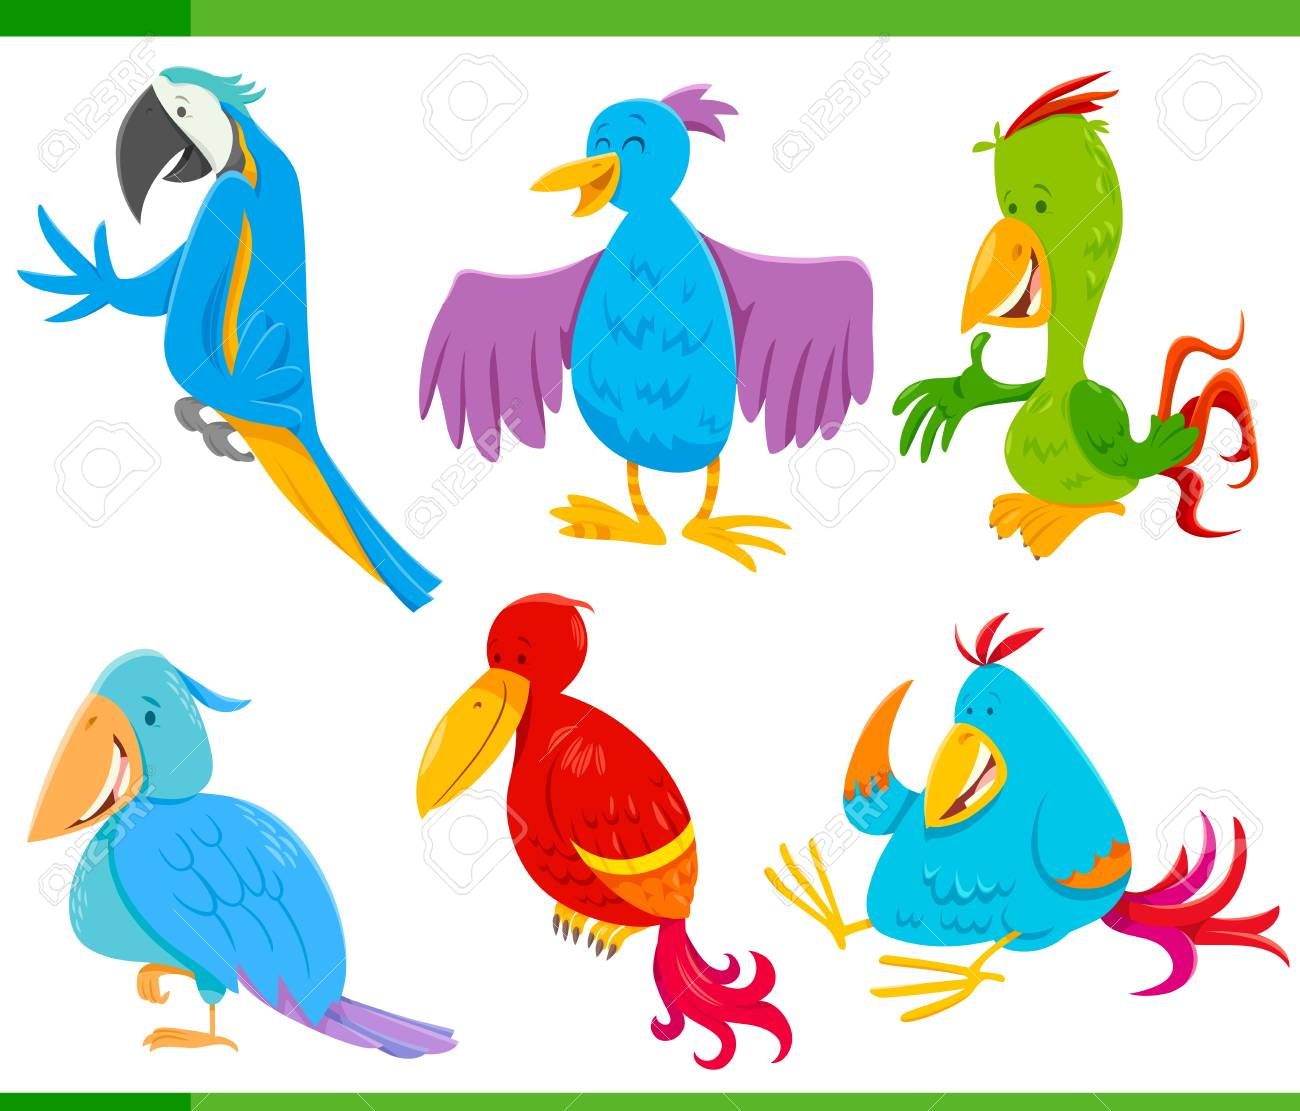 Song Bird Illustrations - 8 Hand Drawn Colorful Birds Clipart by VizualStorm